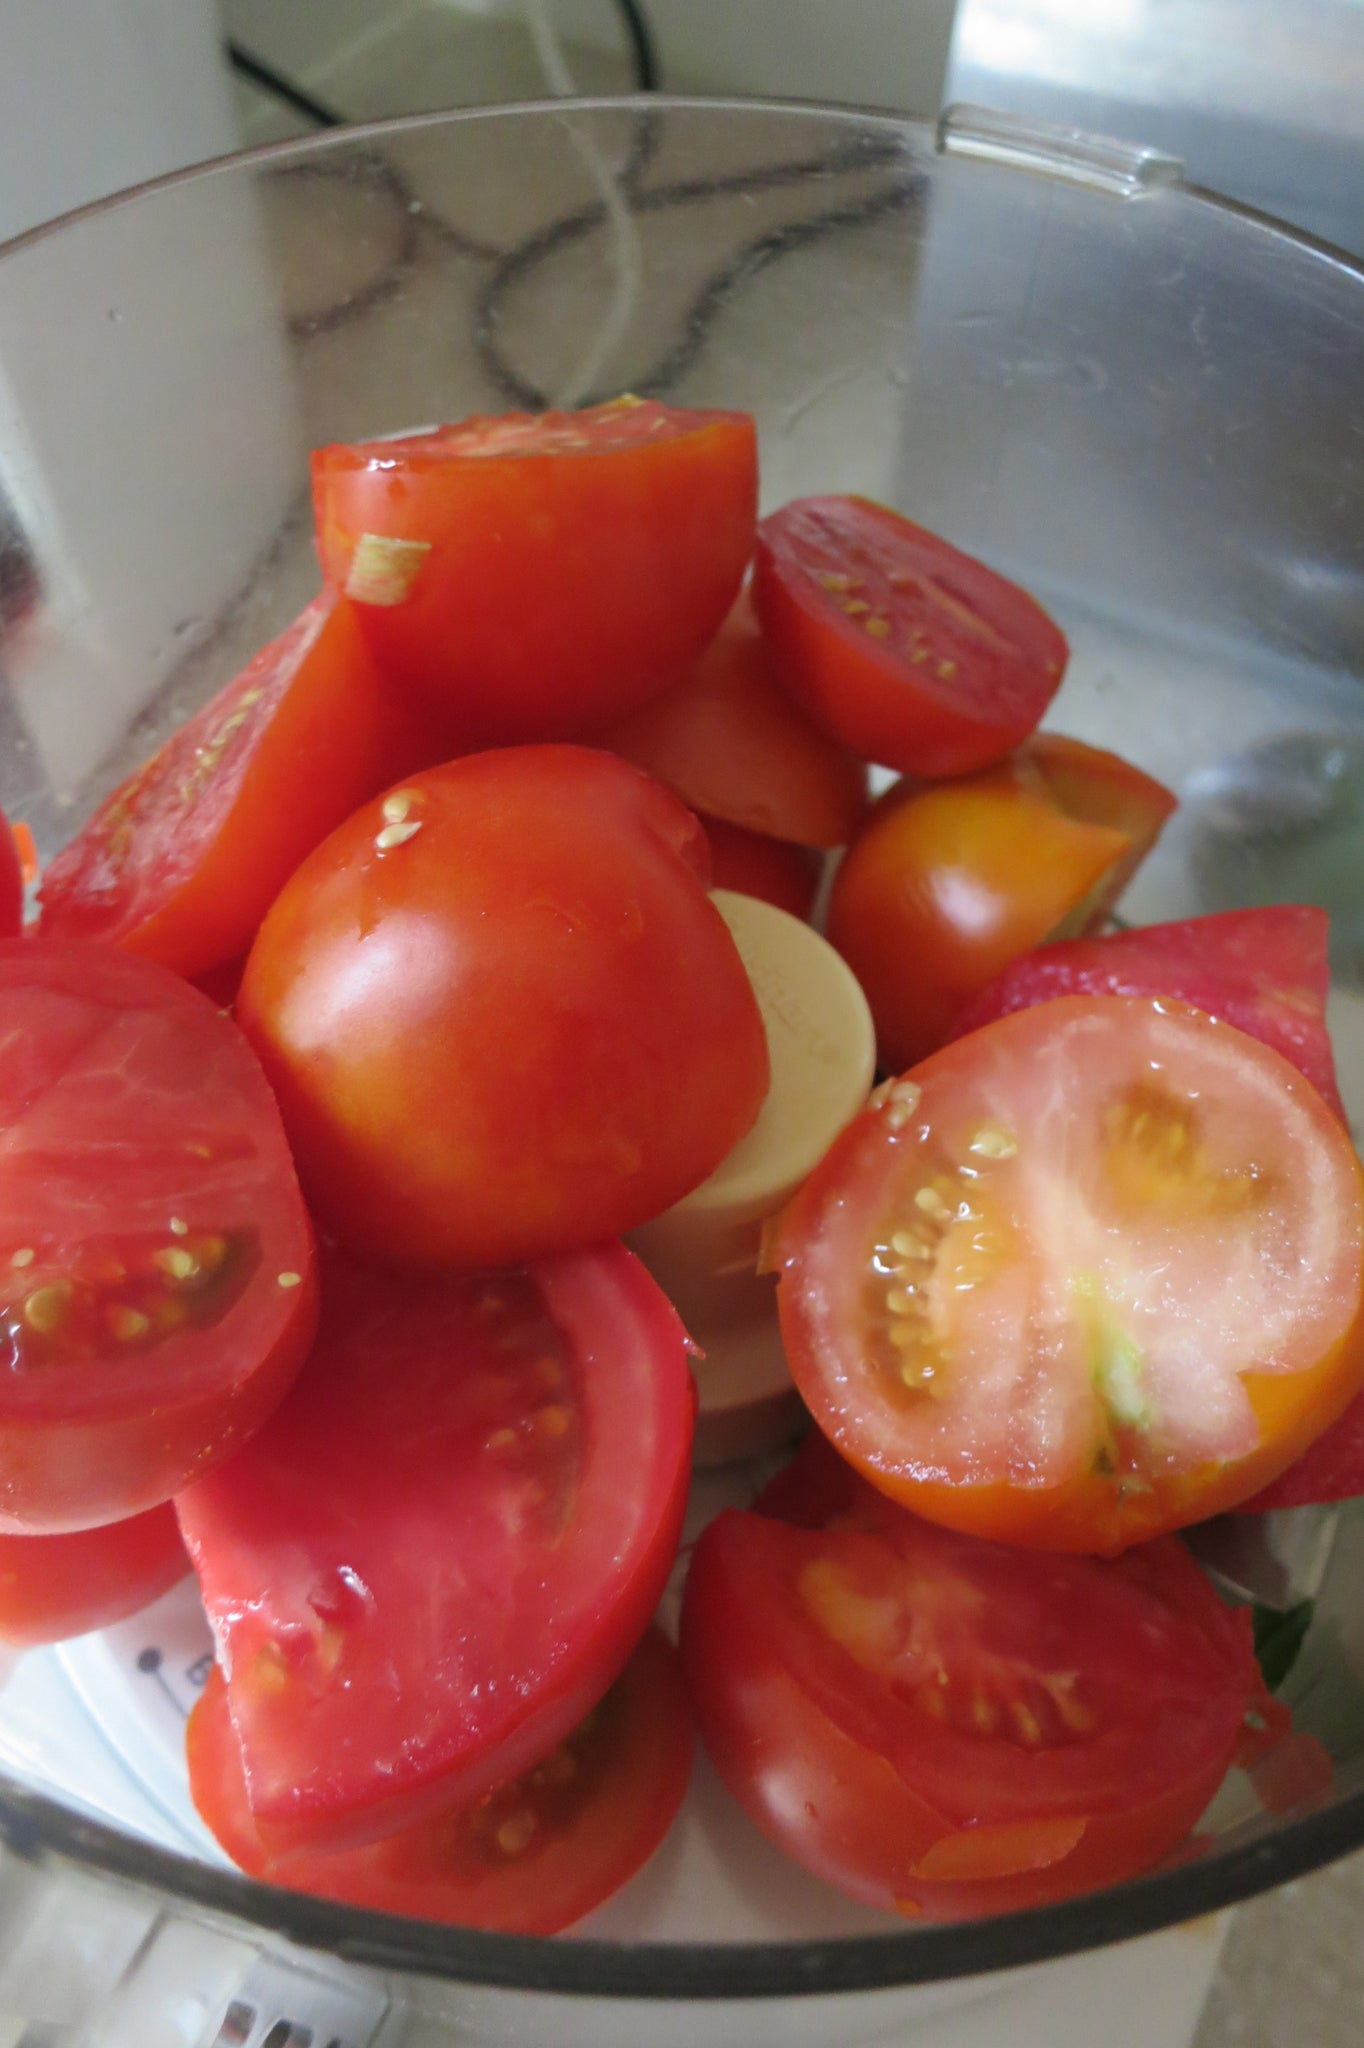 Can you leave skin on tomatoes when making sauce? Process them in a food processor first.